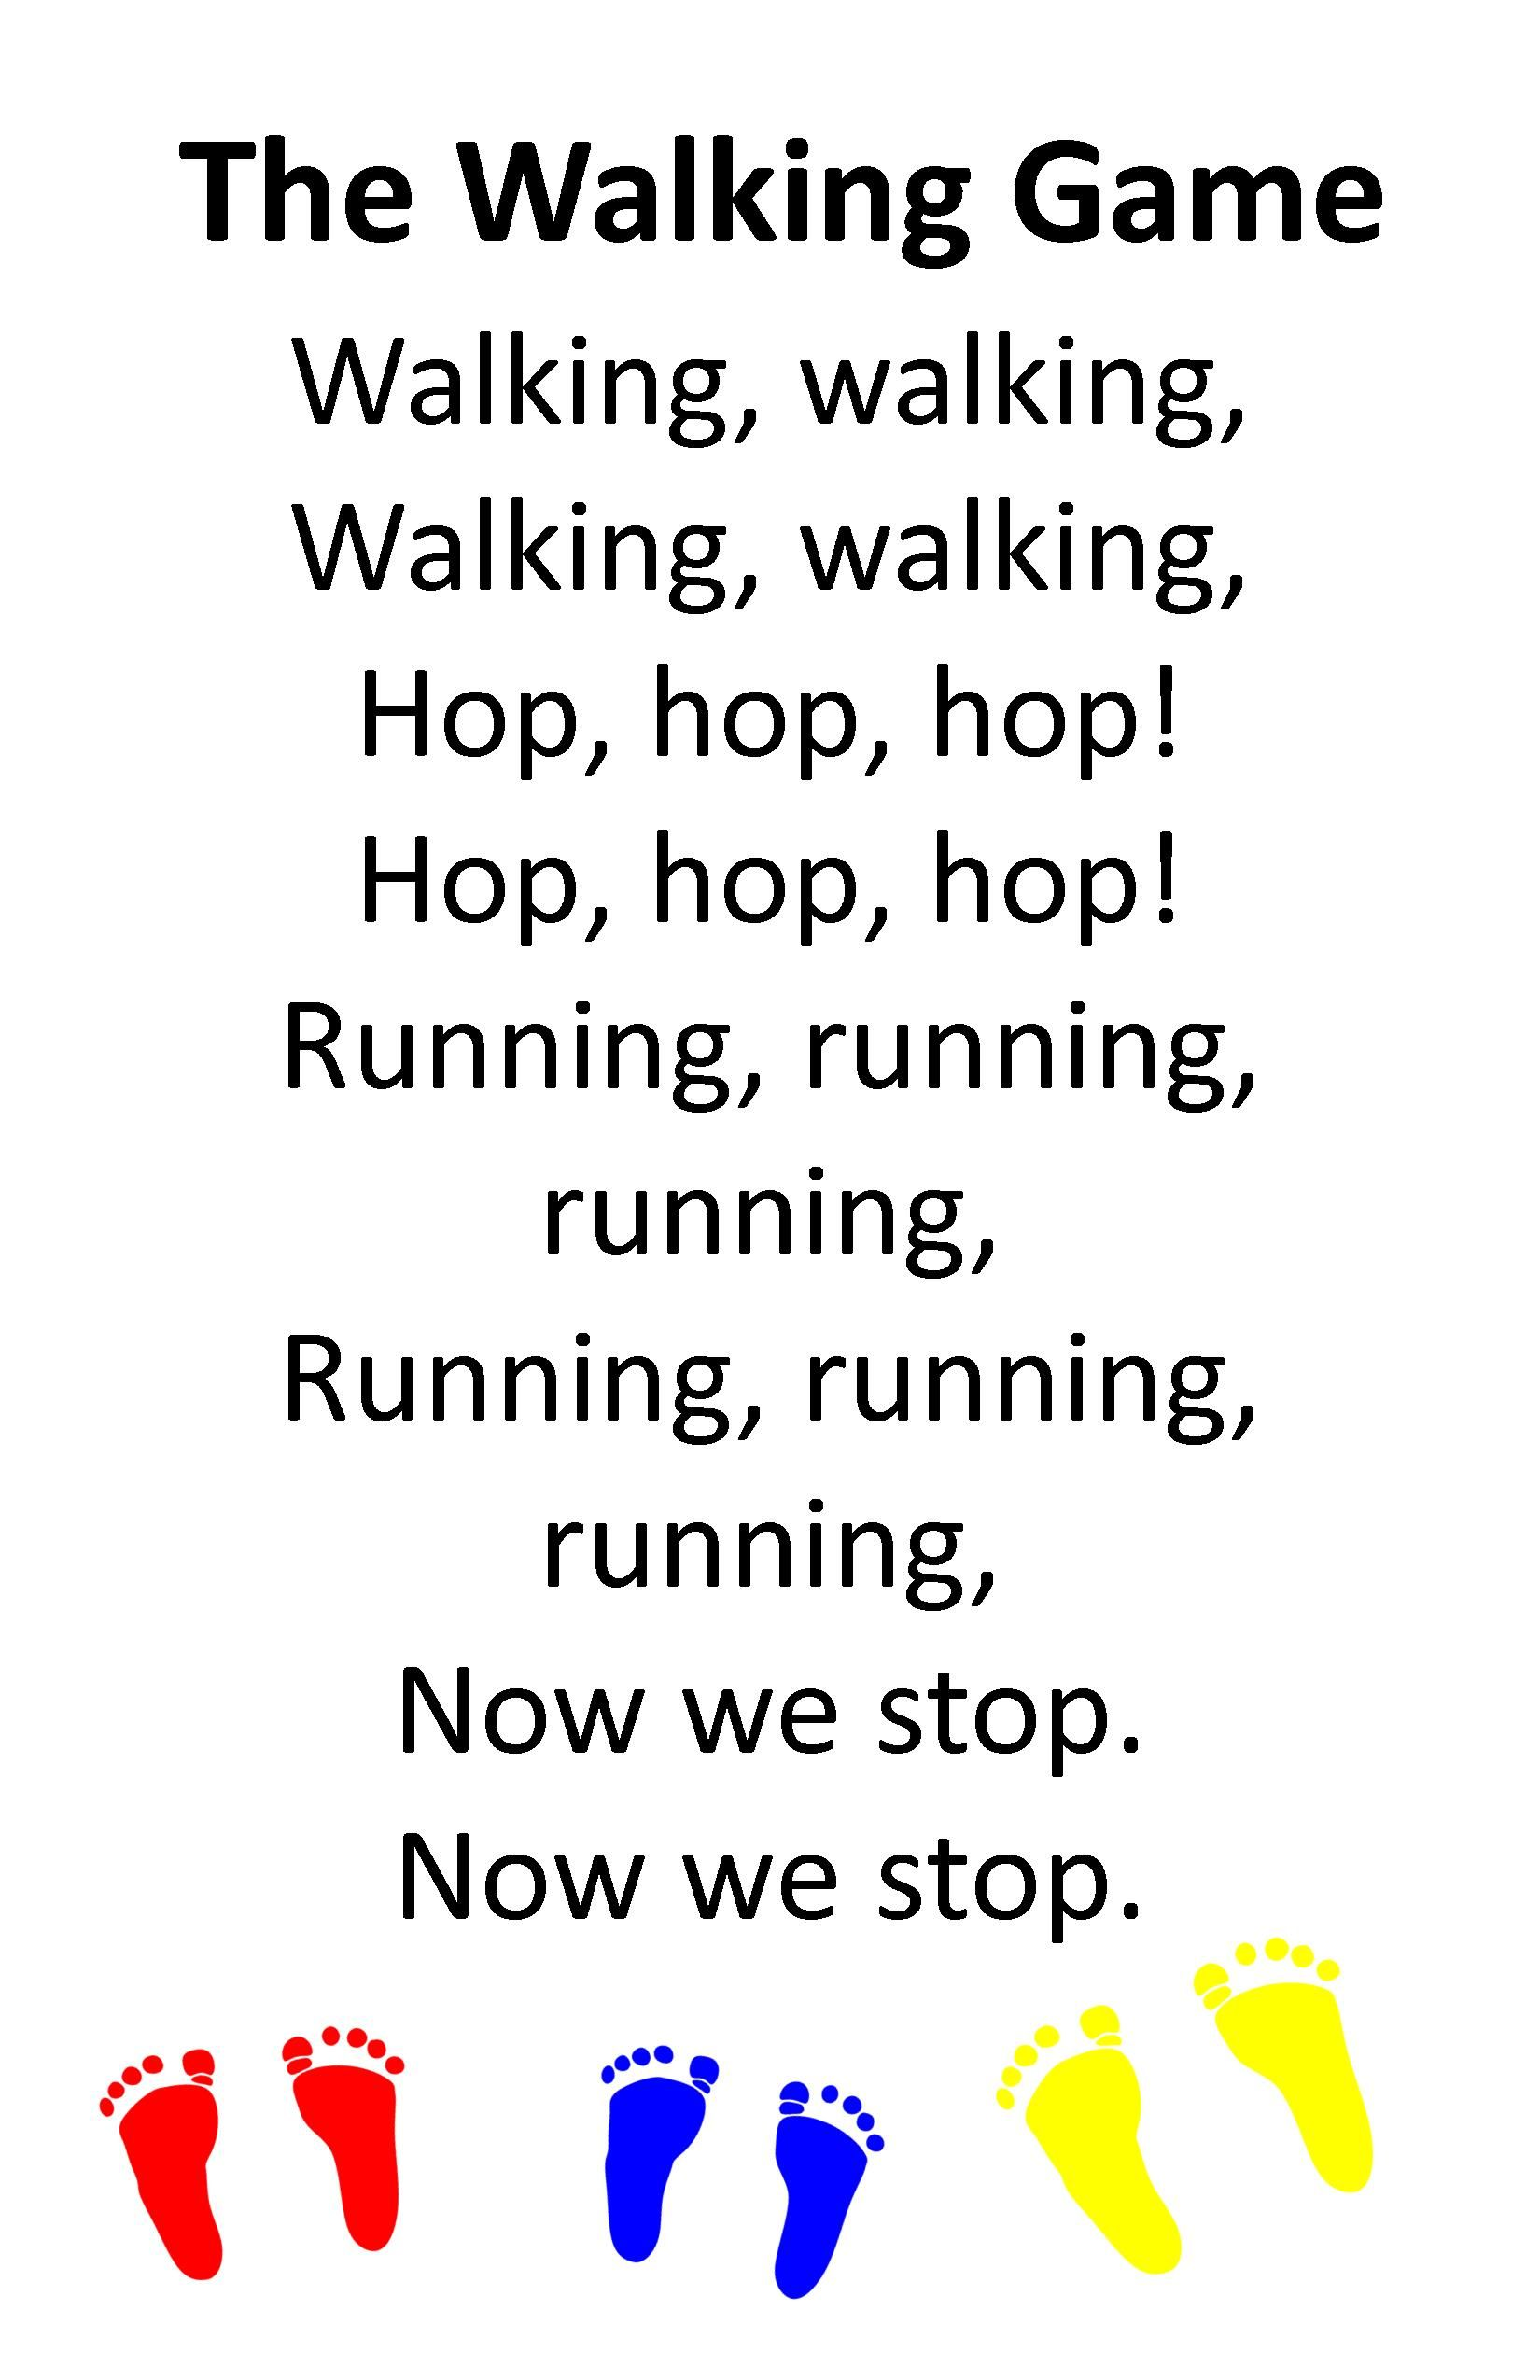 Itty Bitty Activity Or Rhyme The Walking Game Sung To The Tune Of Frere Jacques